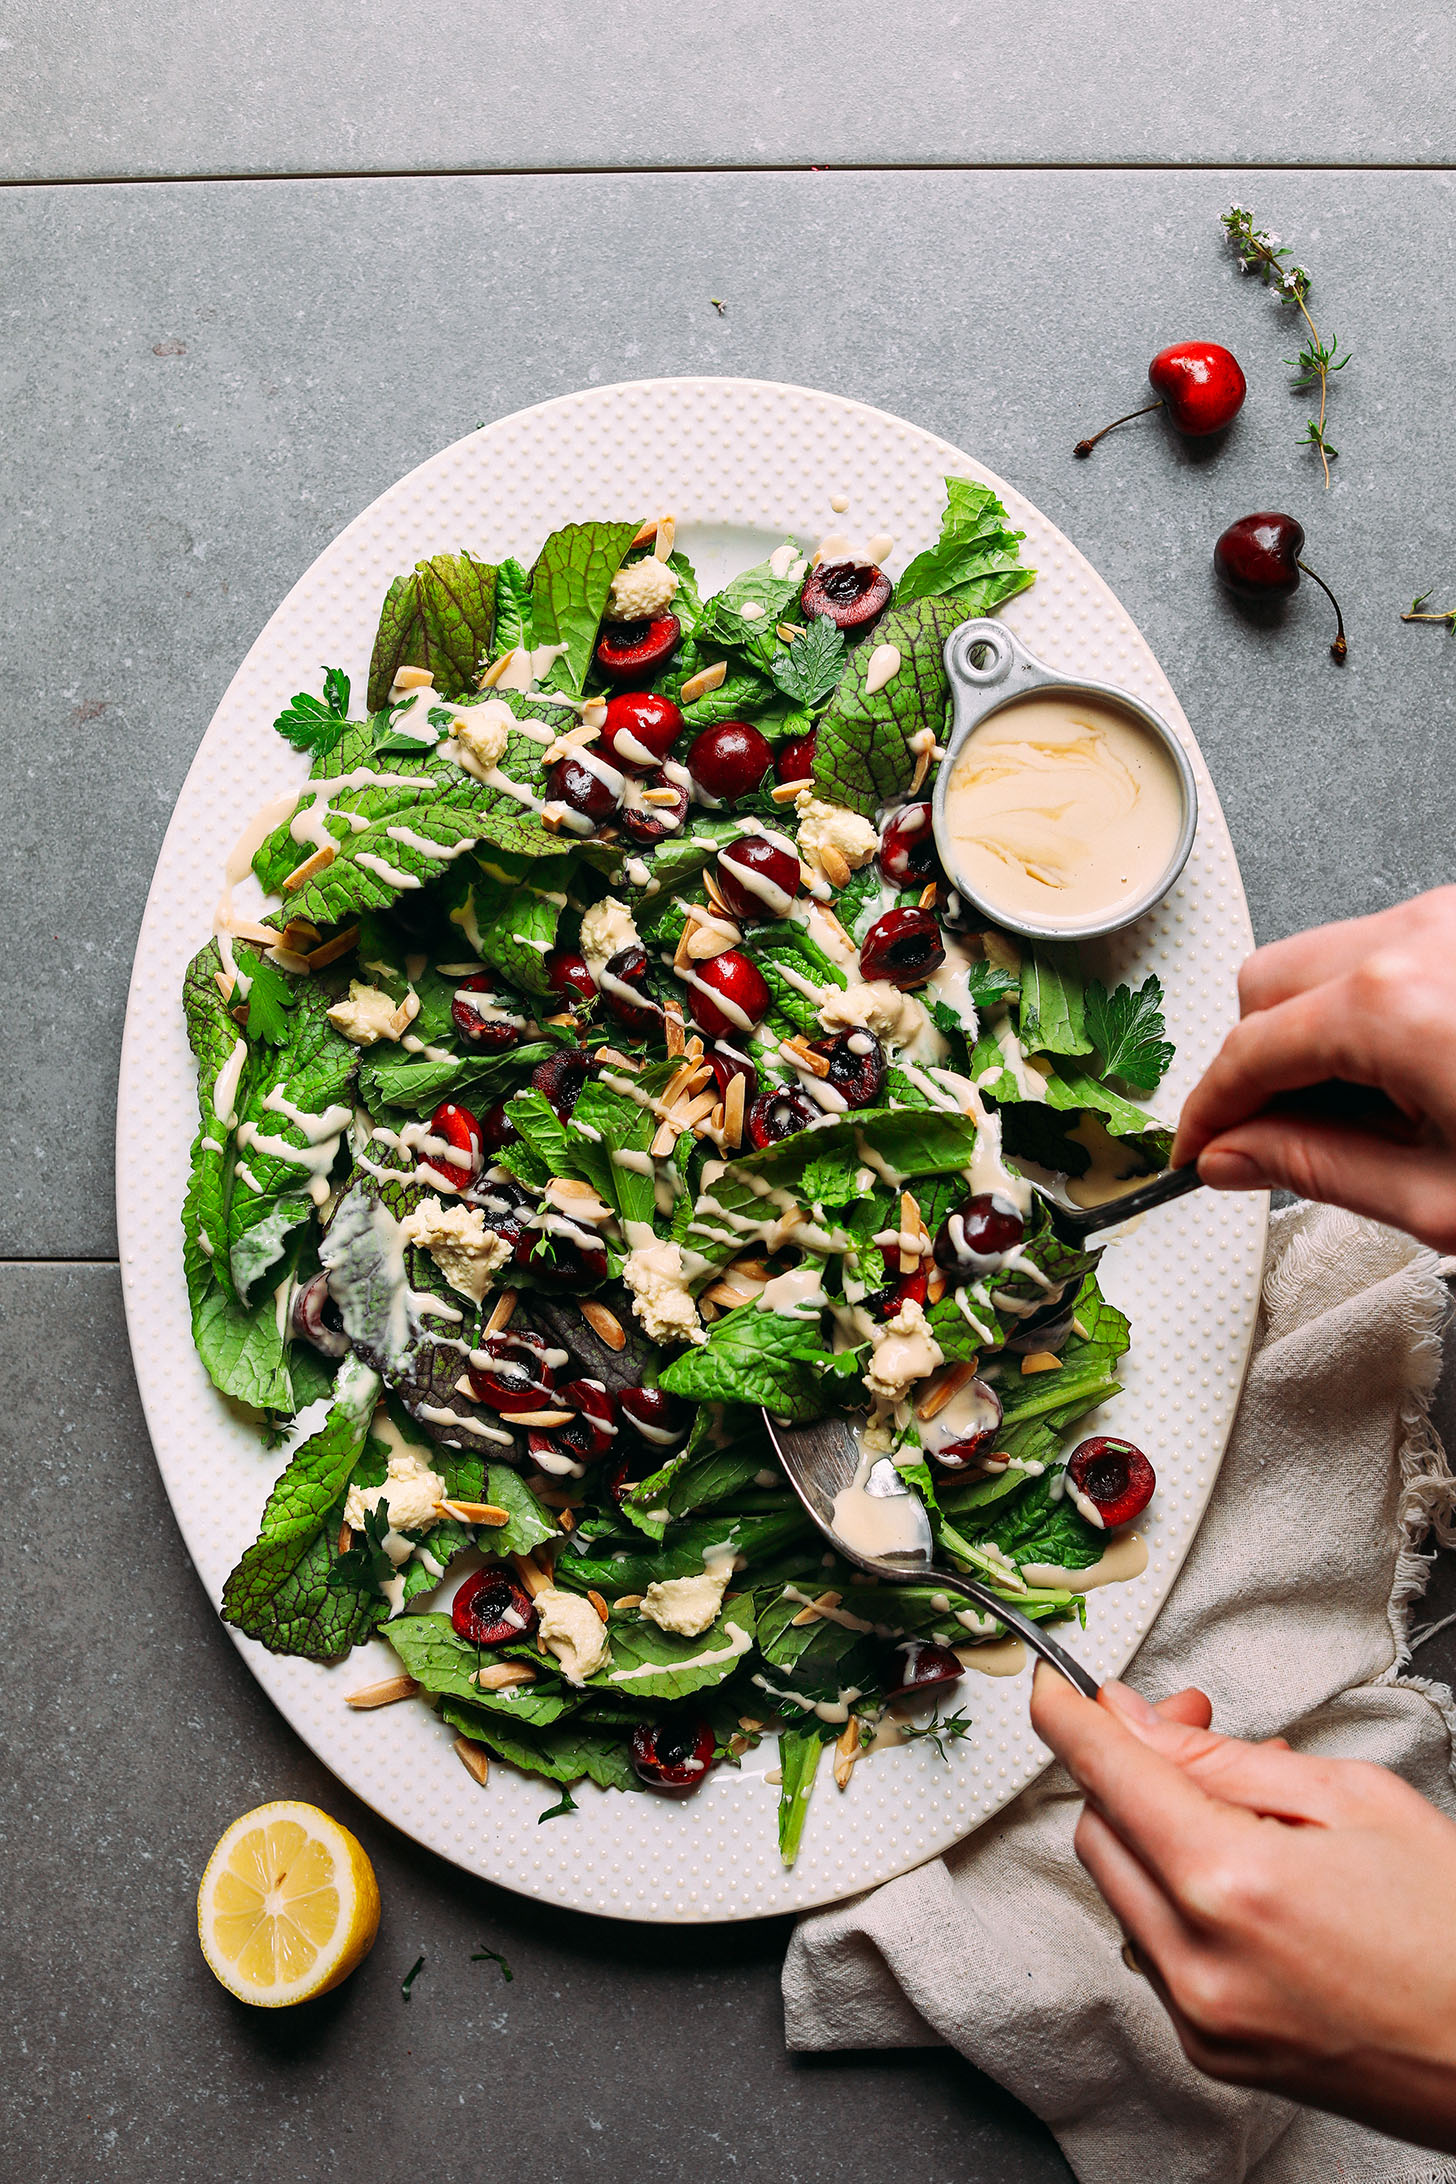 Grabbing a serving of our healthy Mustard Green Salad with Cherries, Toasted Almonds, Nut Cheese, and Tahini Dressing